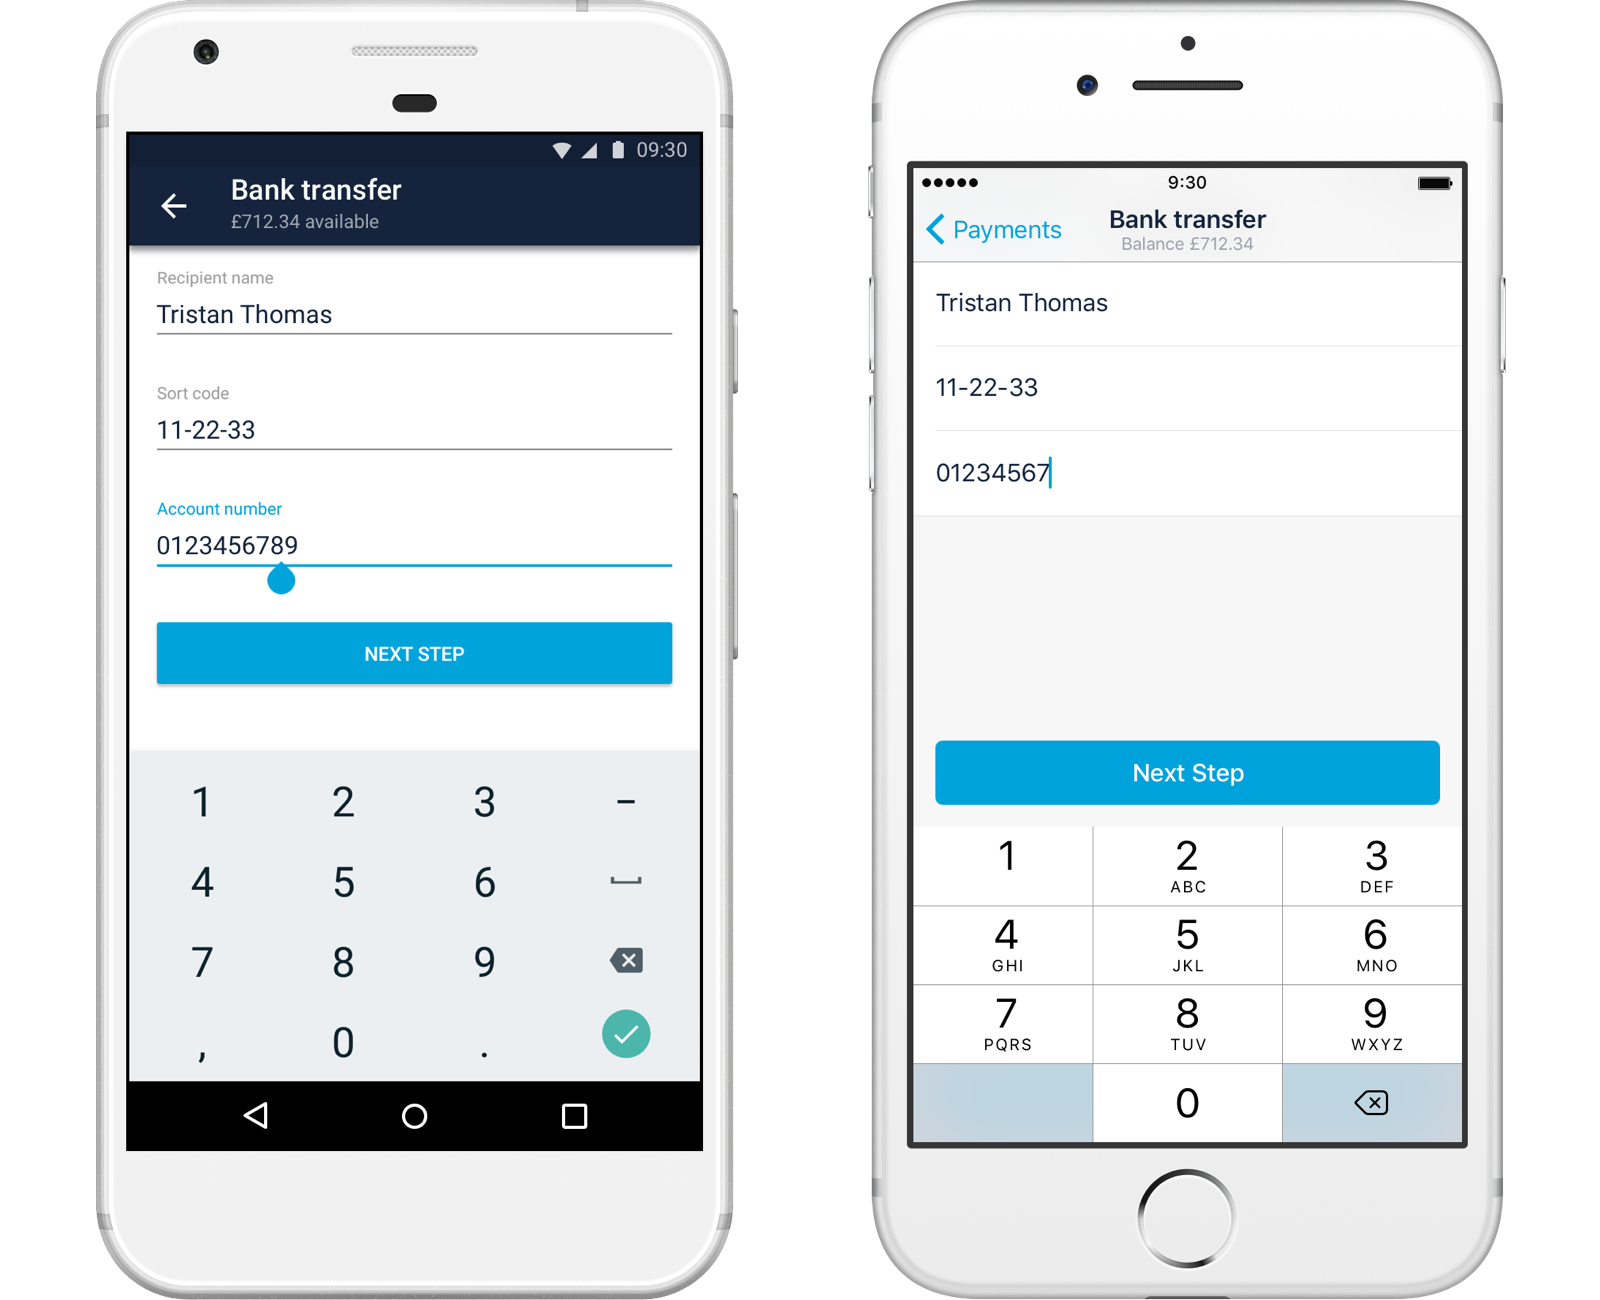 Screenshots of current account bank transfers in both Android and iOS